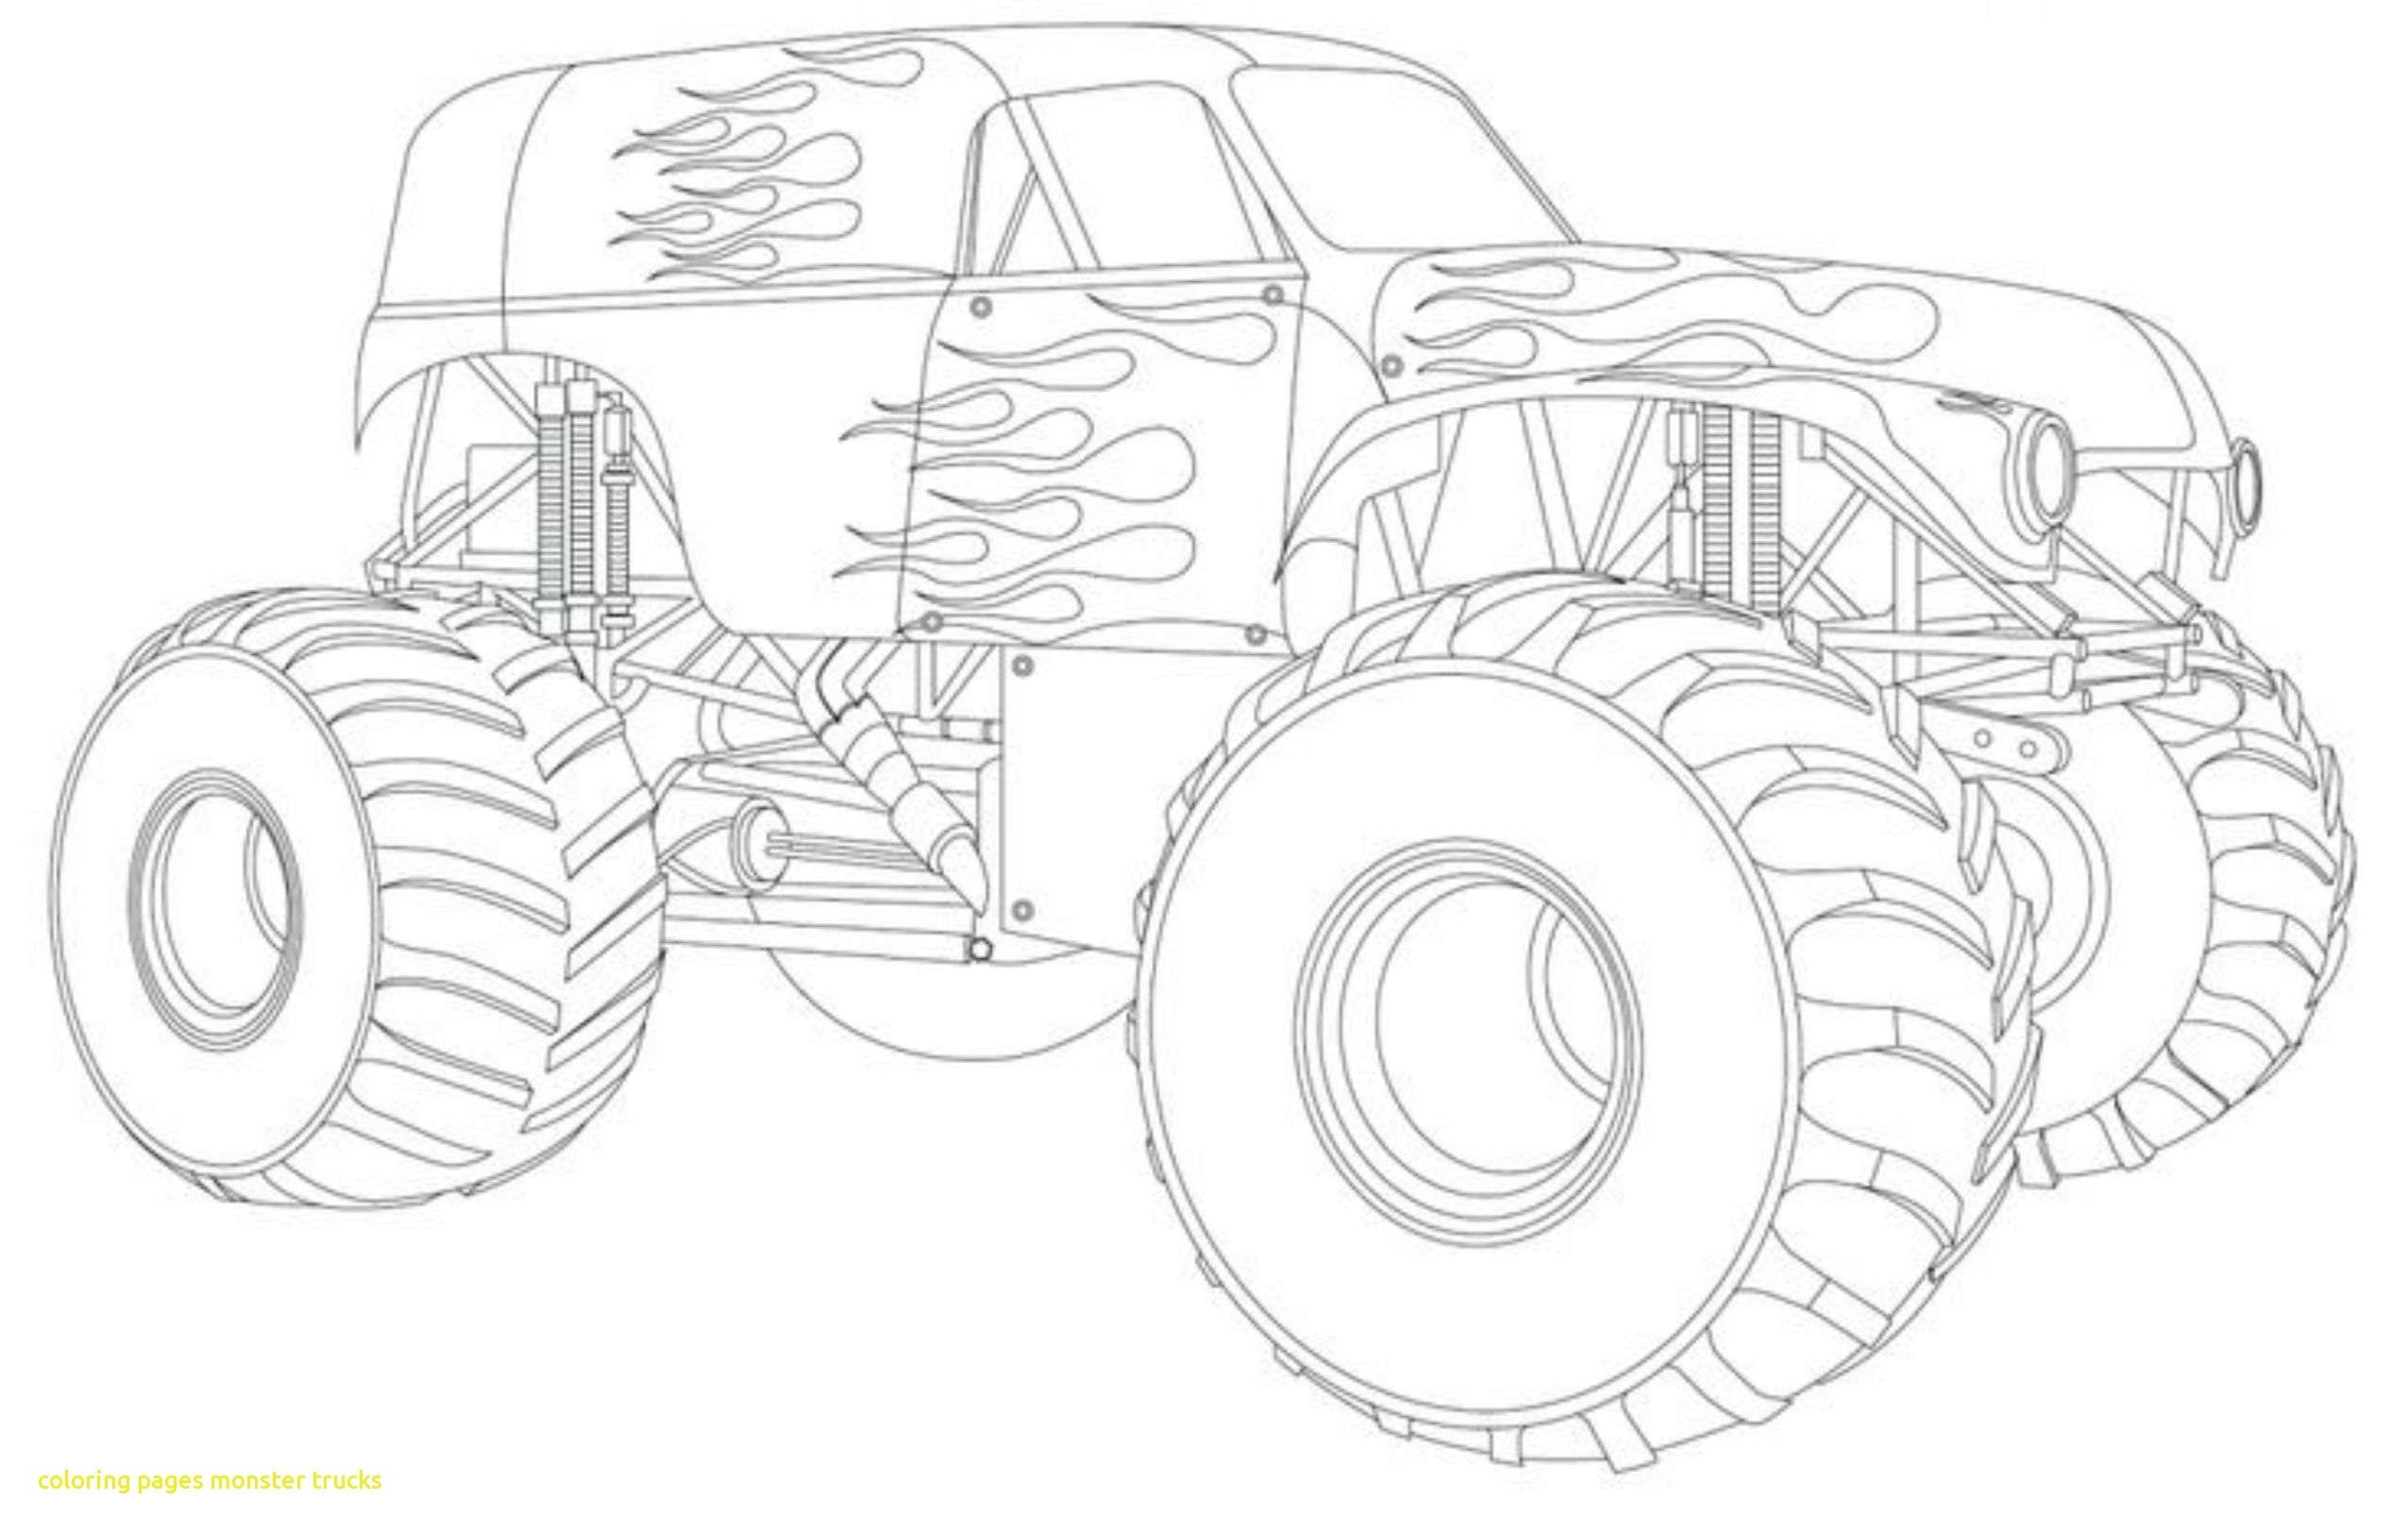 Monster Truck Coloring Pages  Download 19b - Save it to your computer